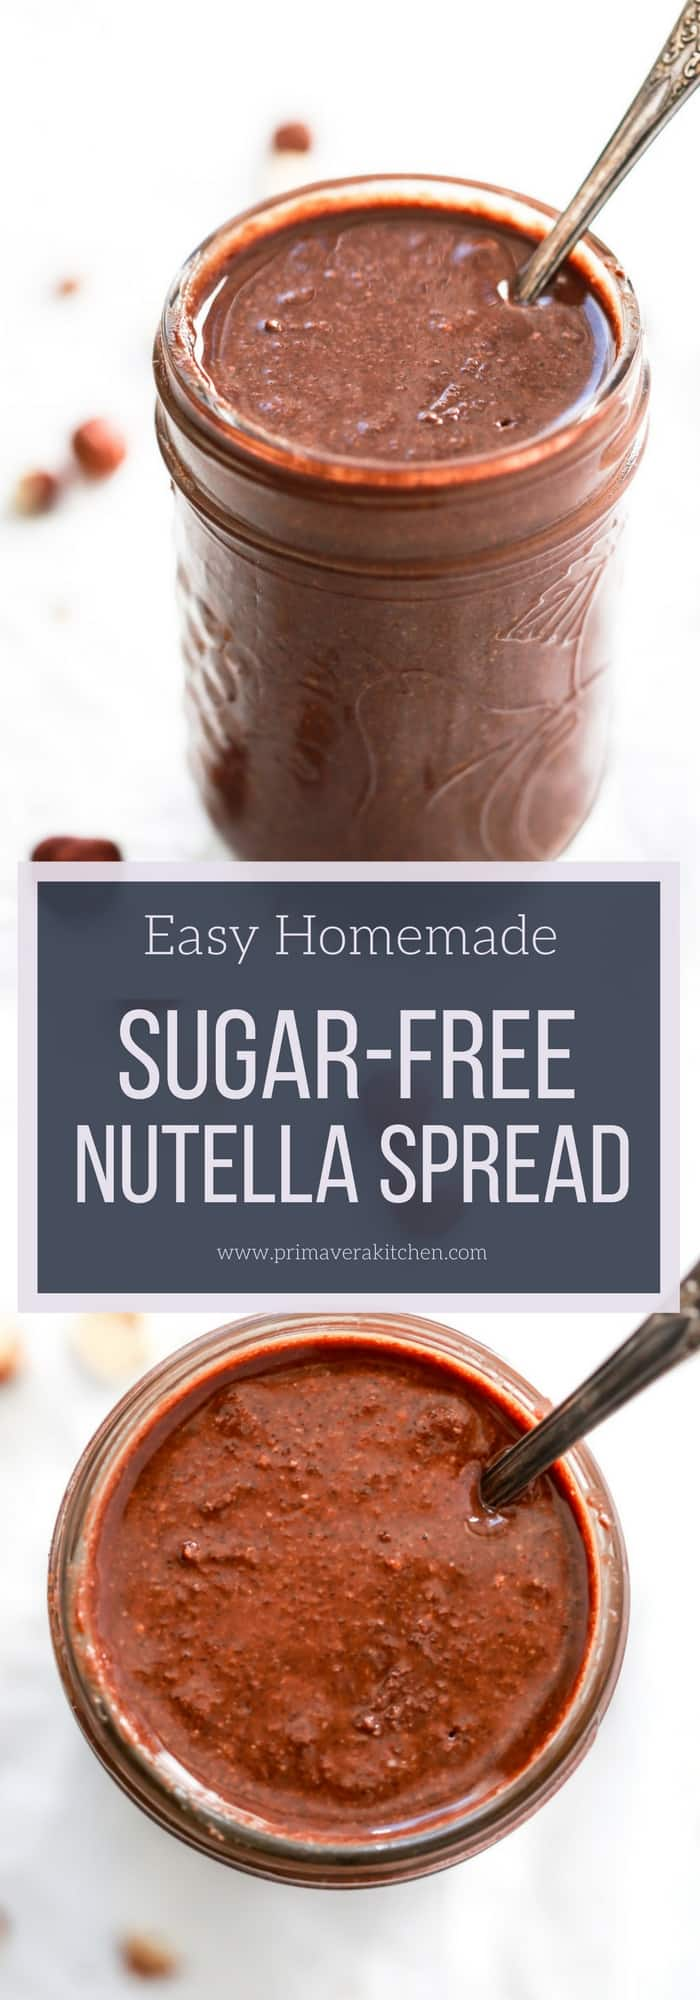 Easy Homemade Sugar-Free Nutella Spread - Primavera Kitchen